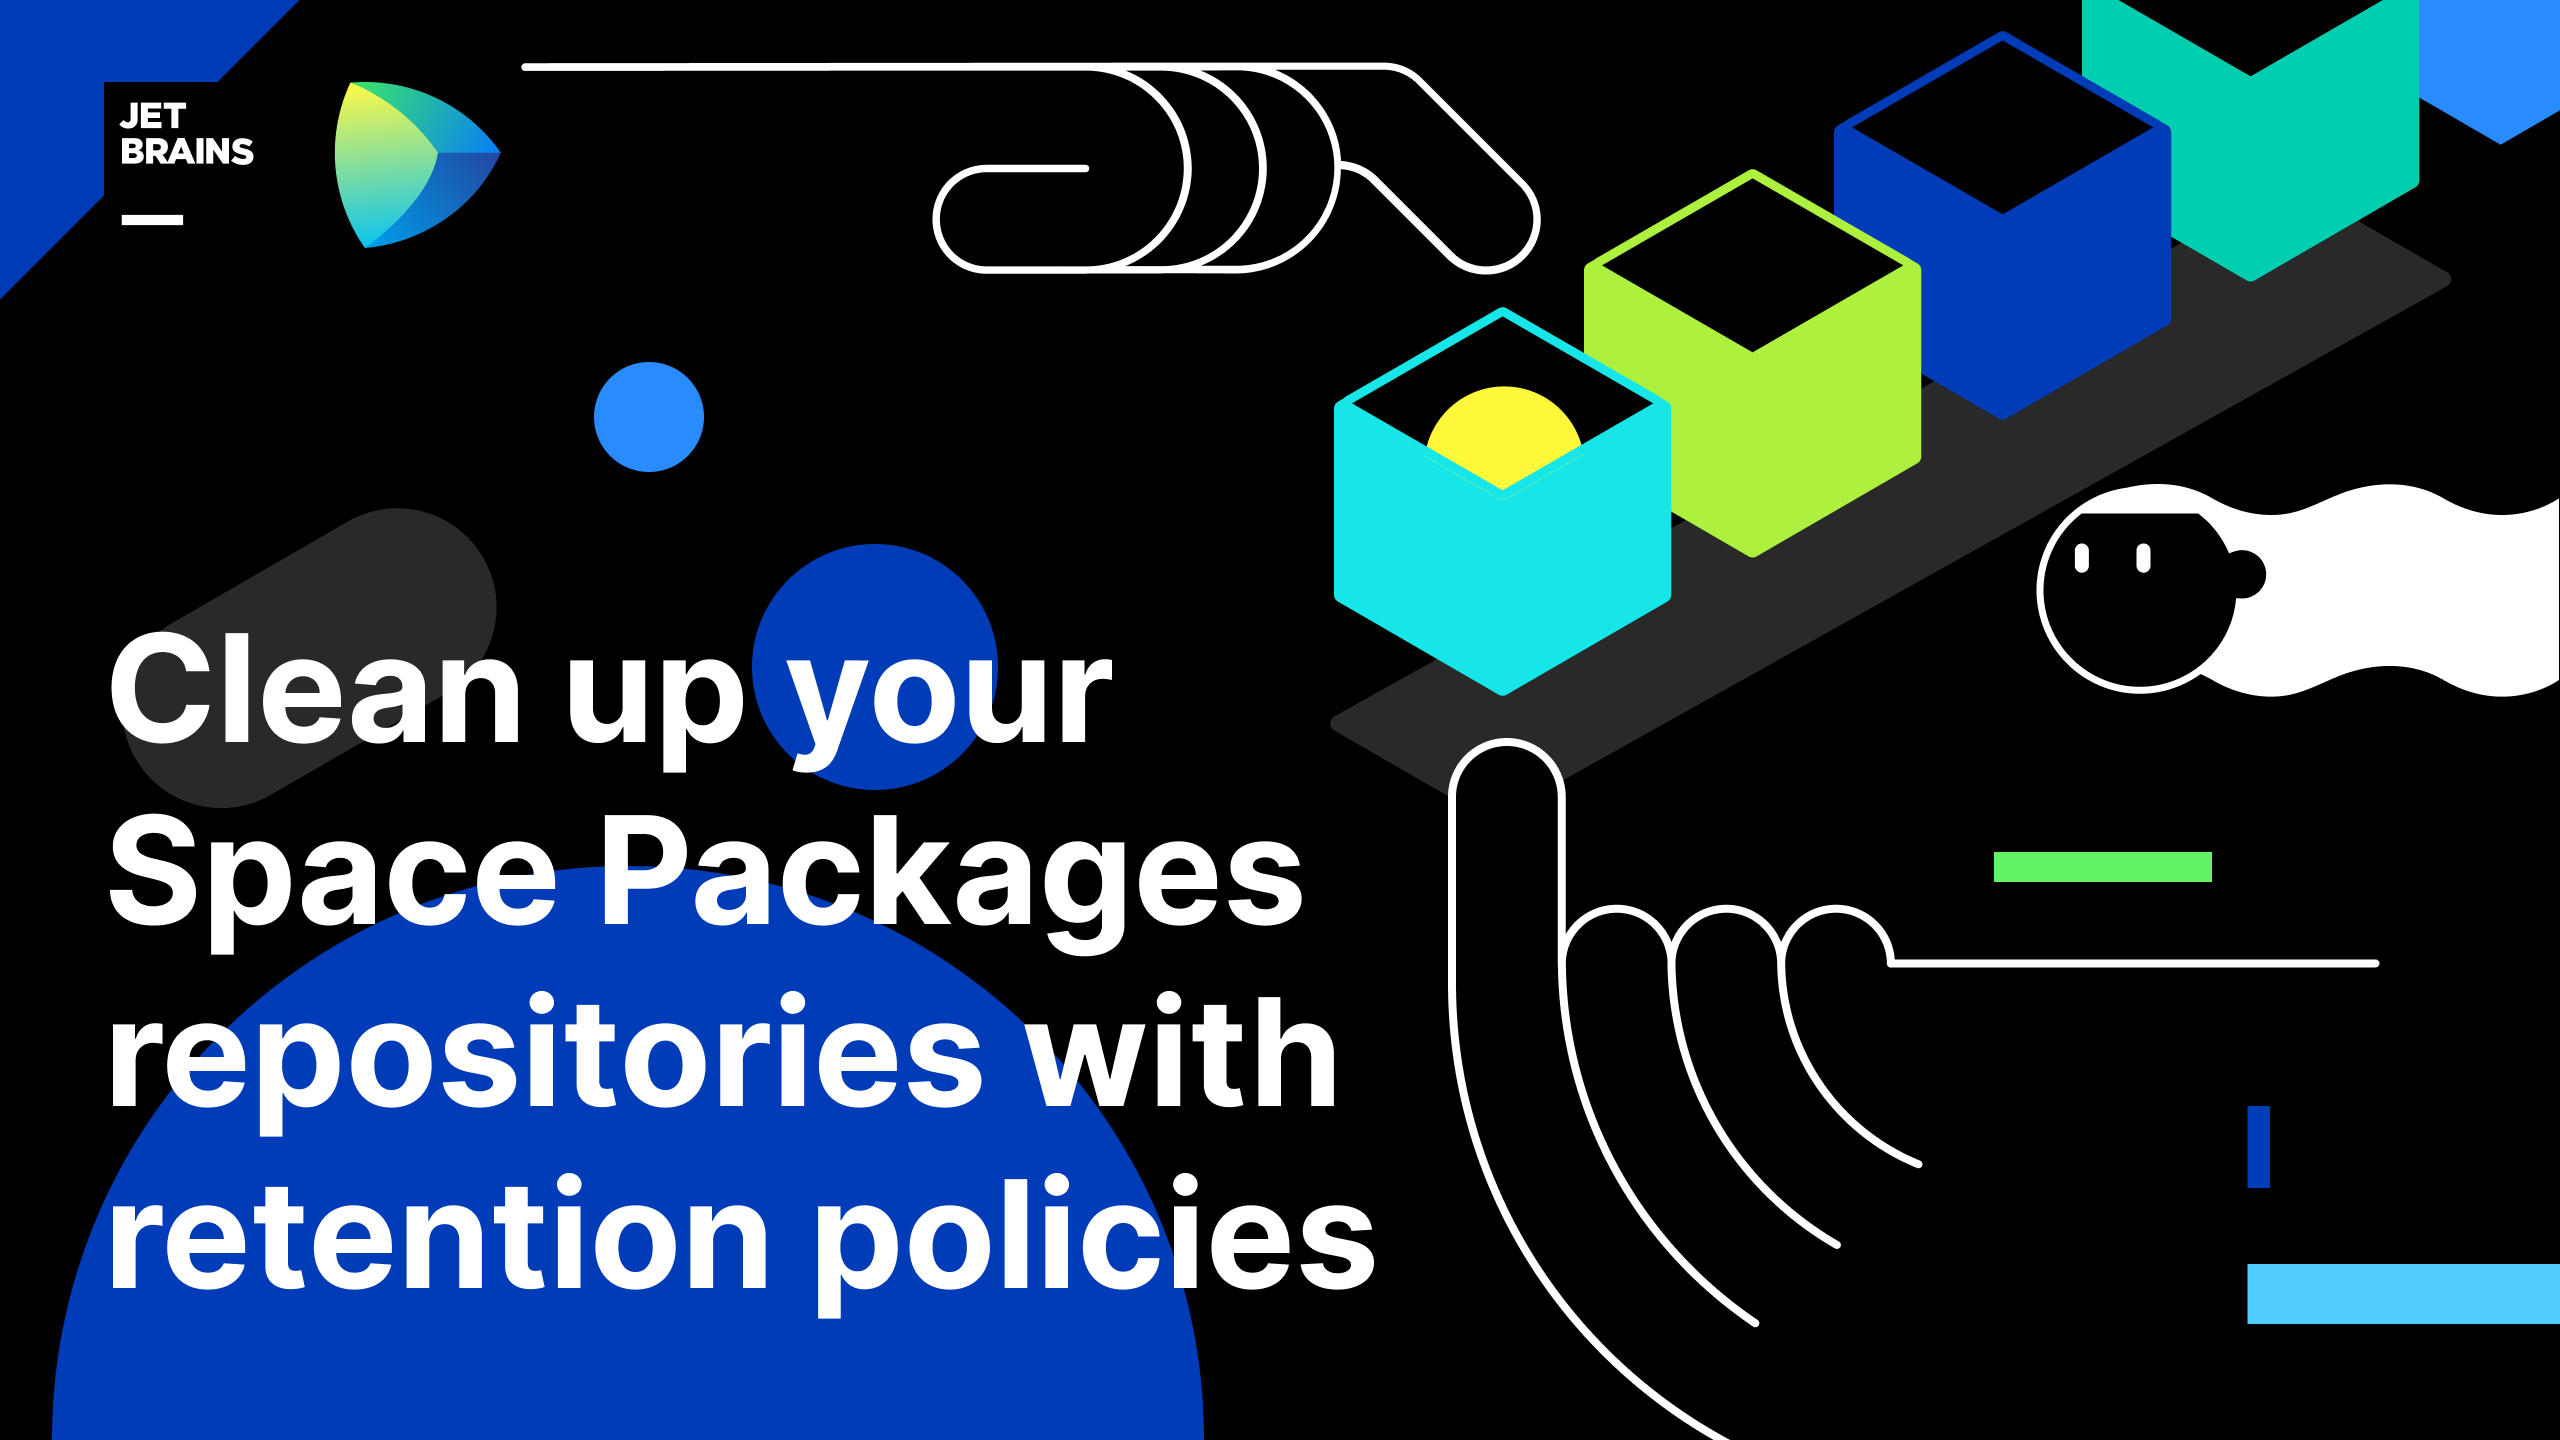 Clean up your Space Packages repositories with retention policies